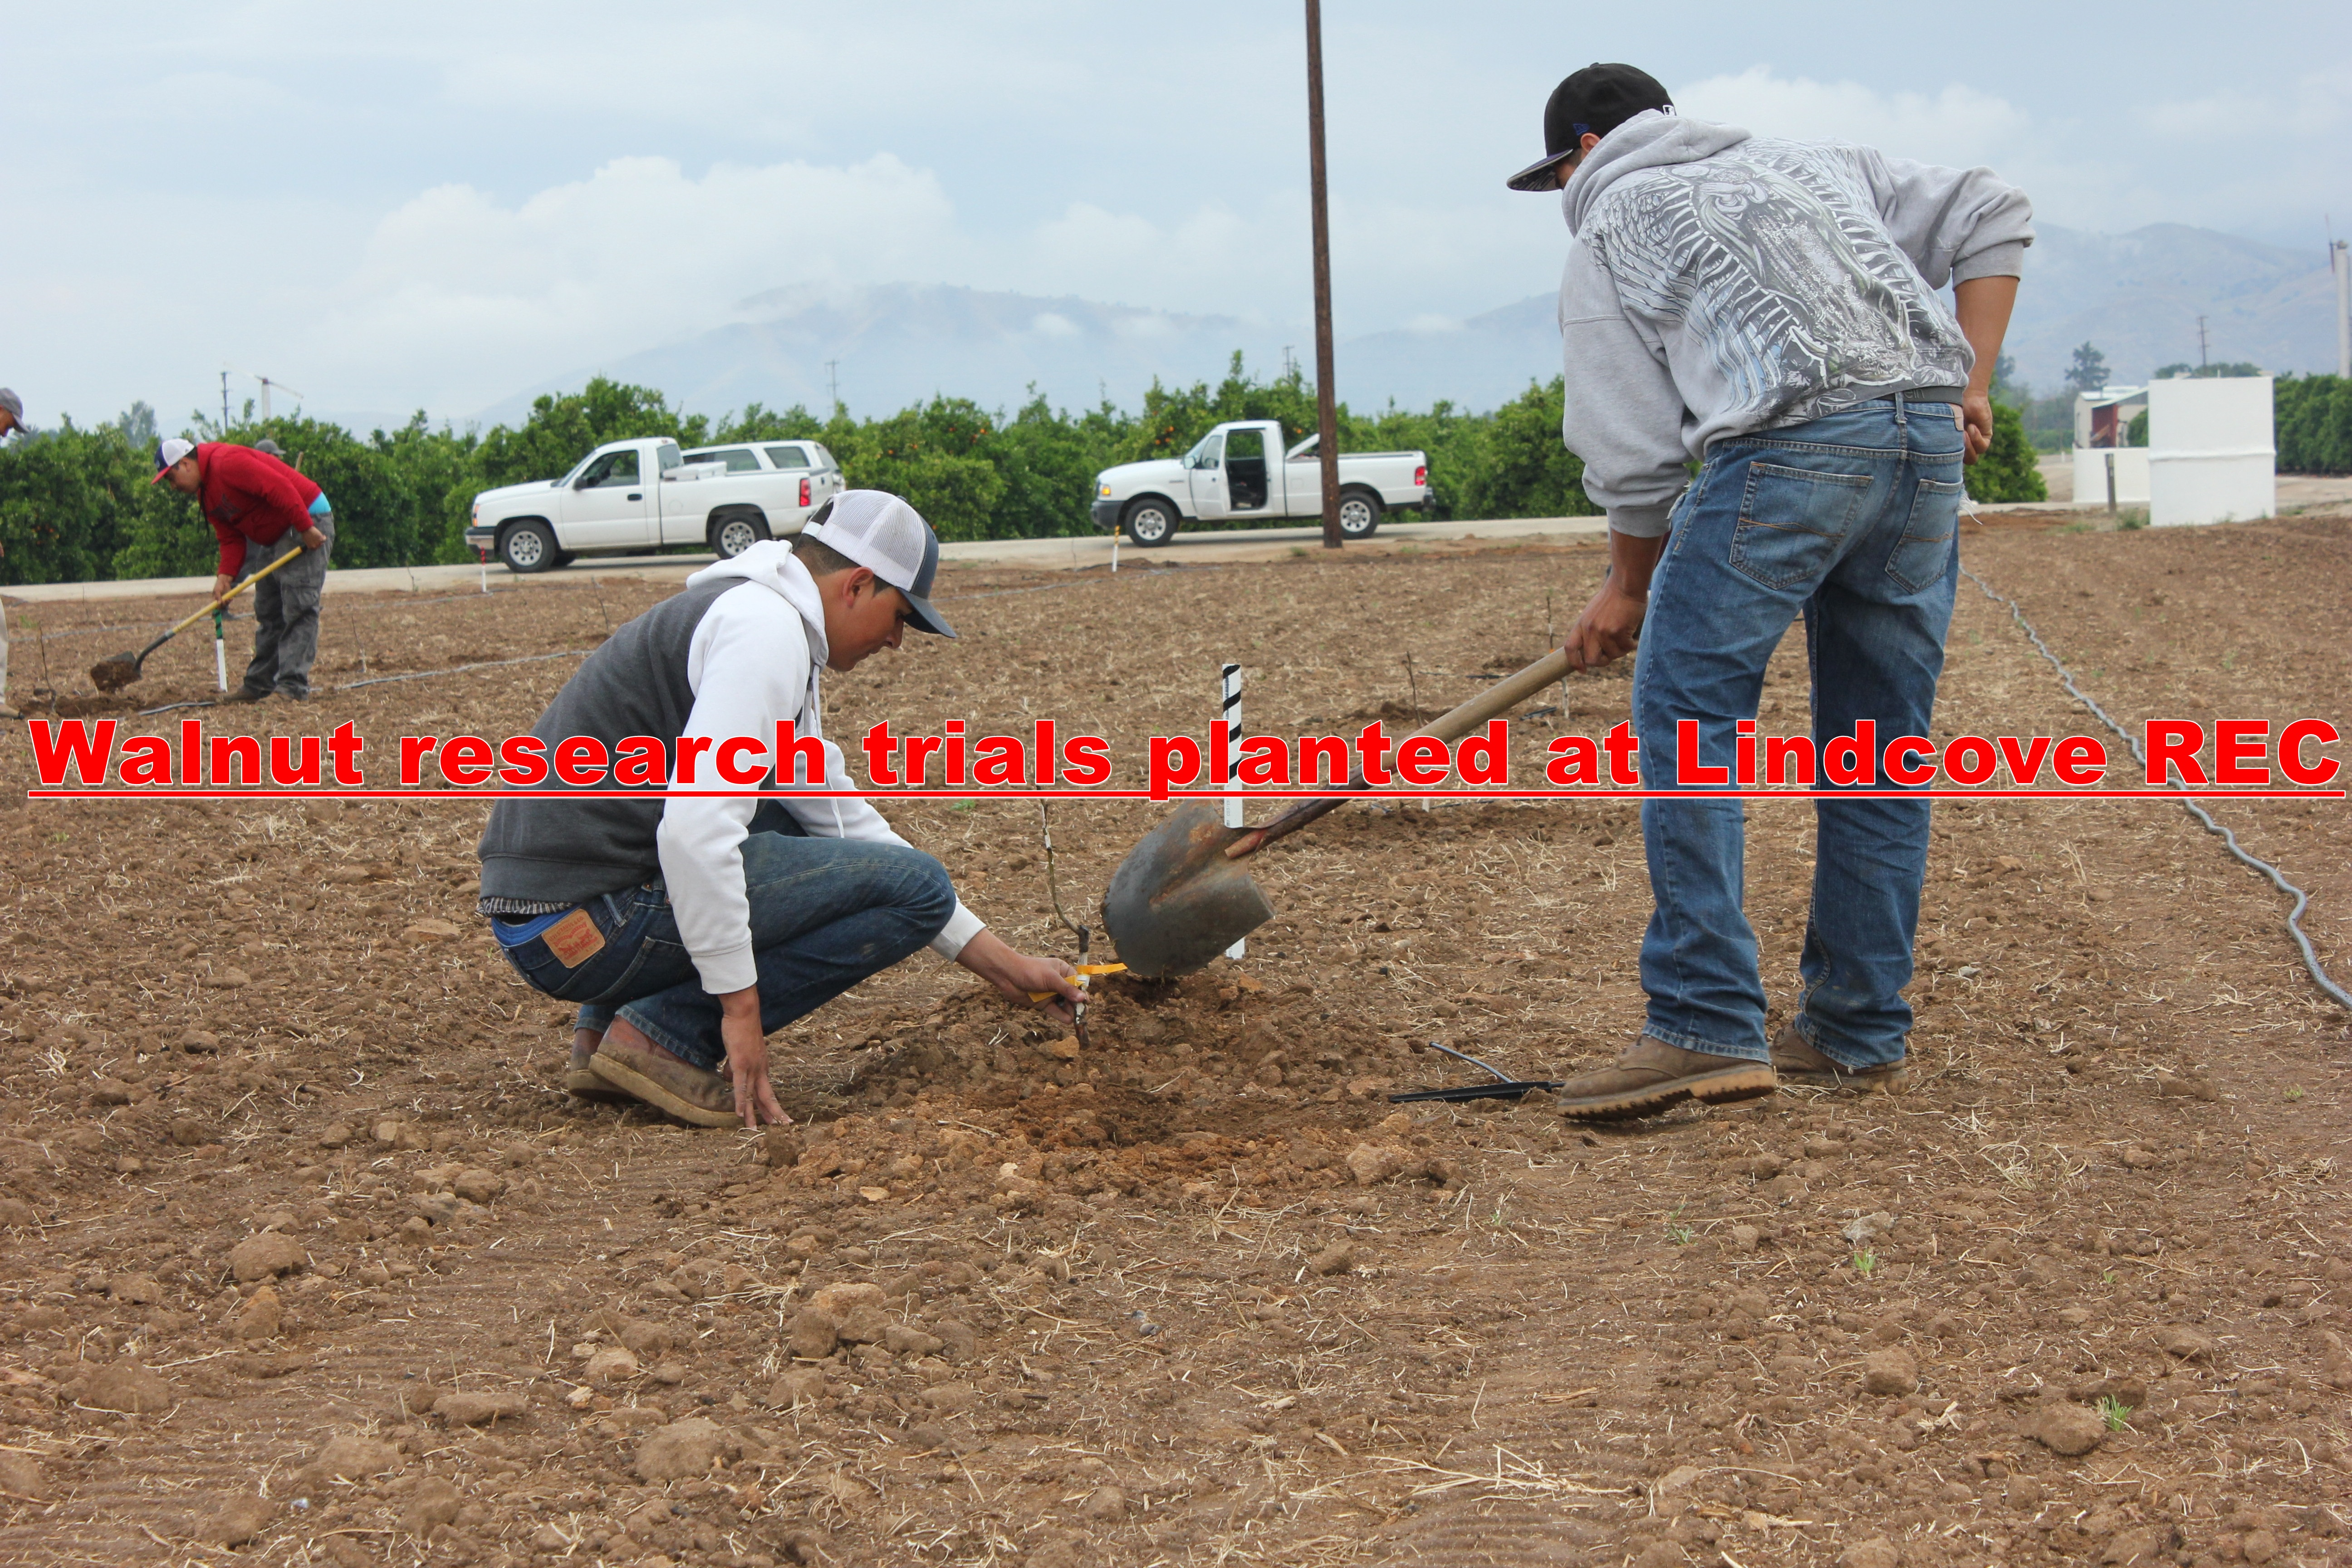 Walnut research trials planted at Lindcove REC